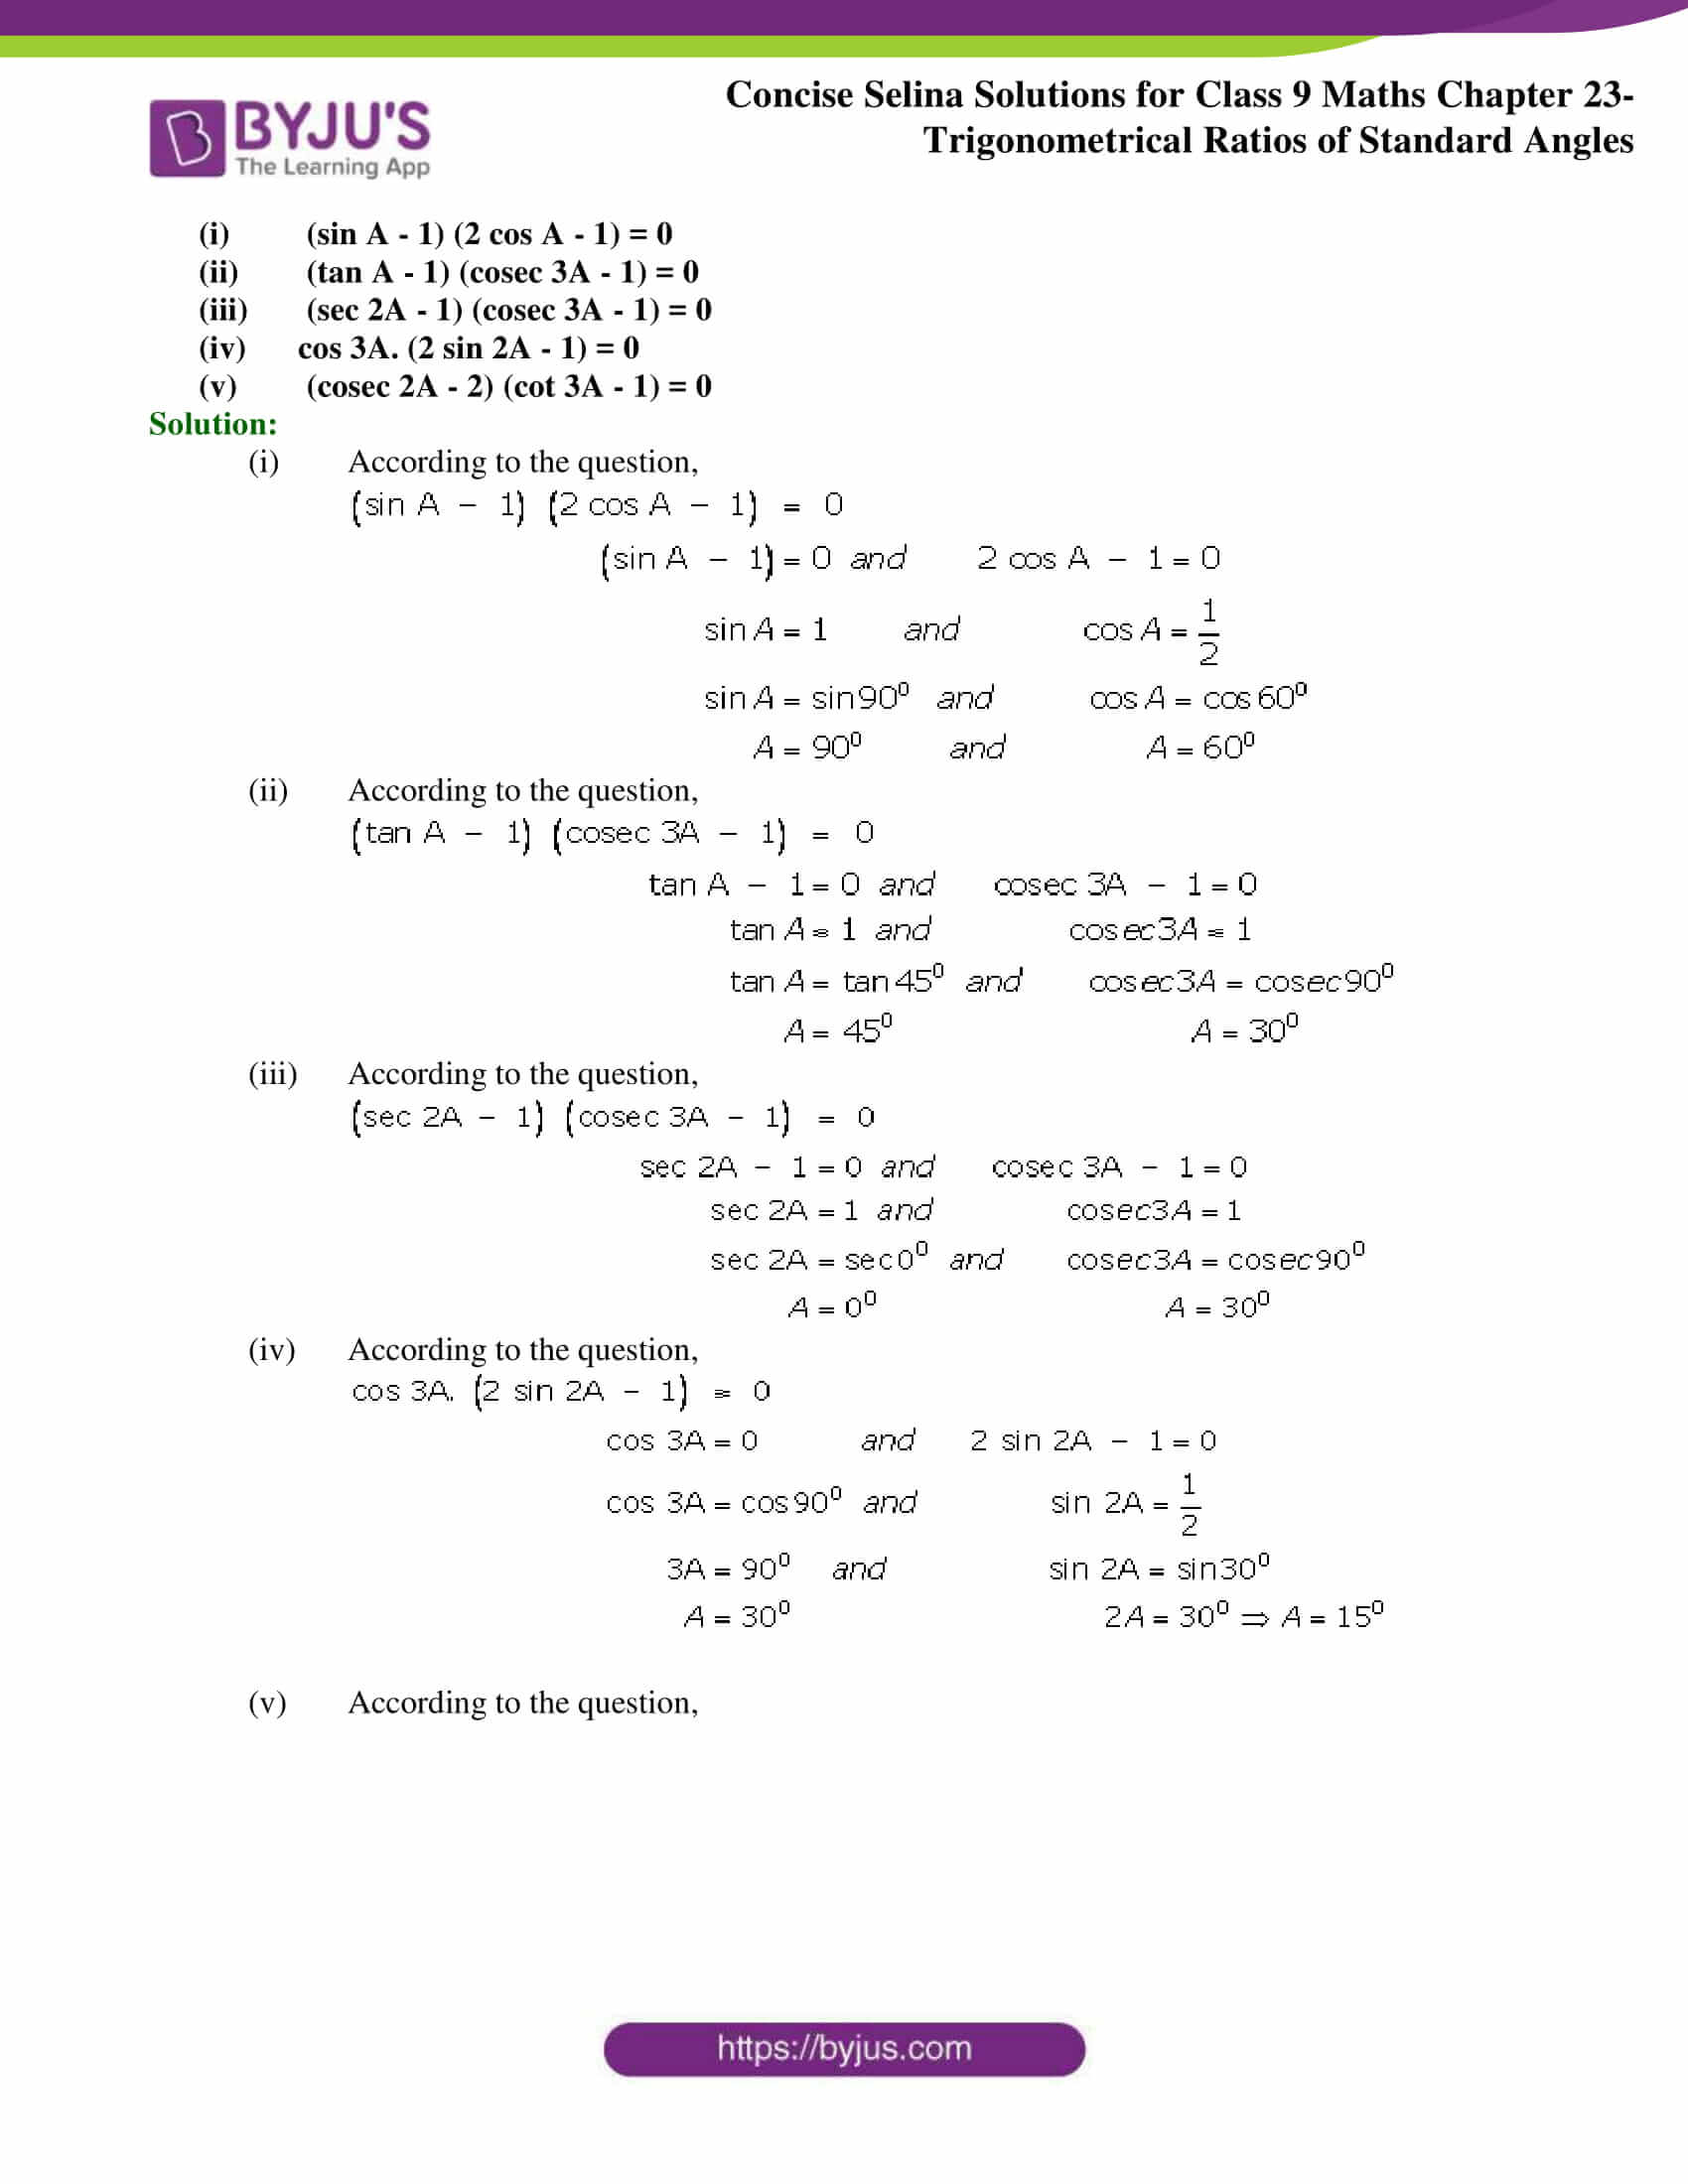 Concise Selina Solutions Class 9 Maths Chapter 23 part 21